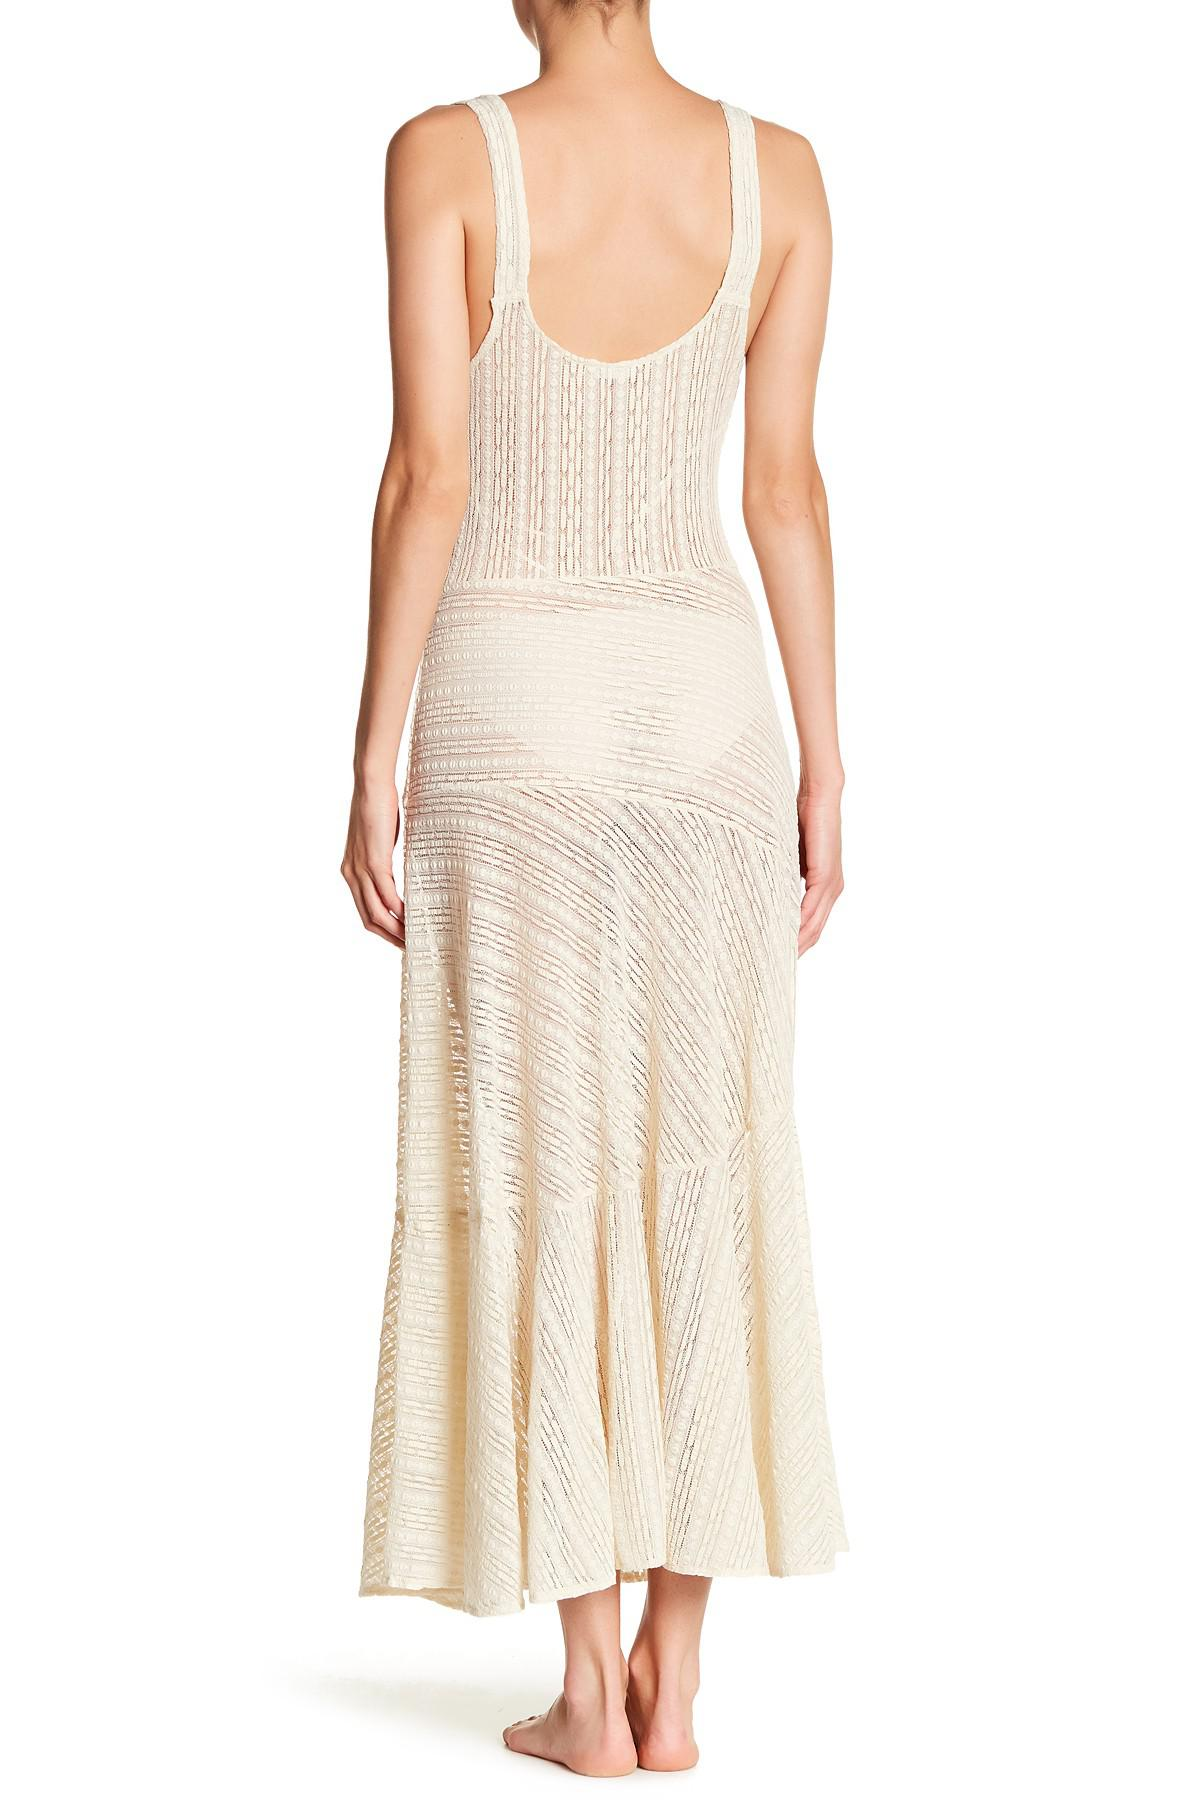 a36a5903e3a0 Free People Love Story Maxi Slip Dress in White - Lyst